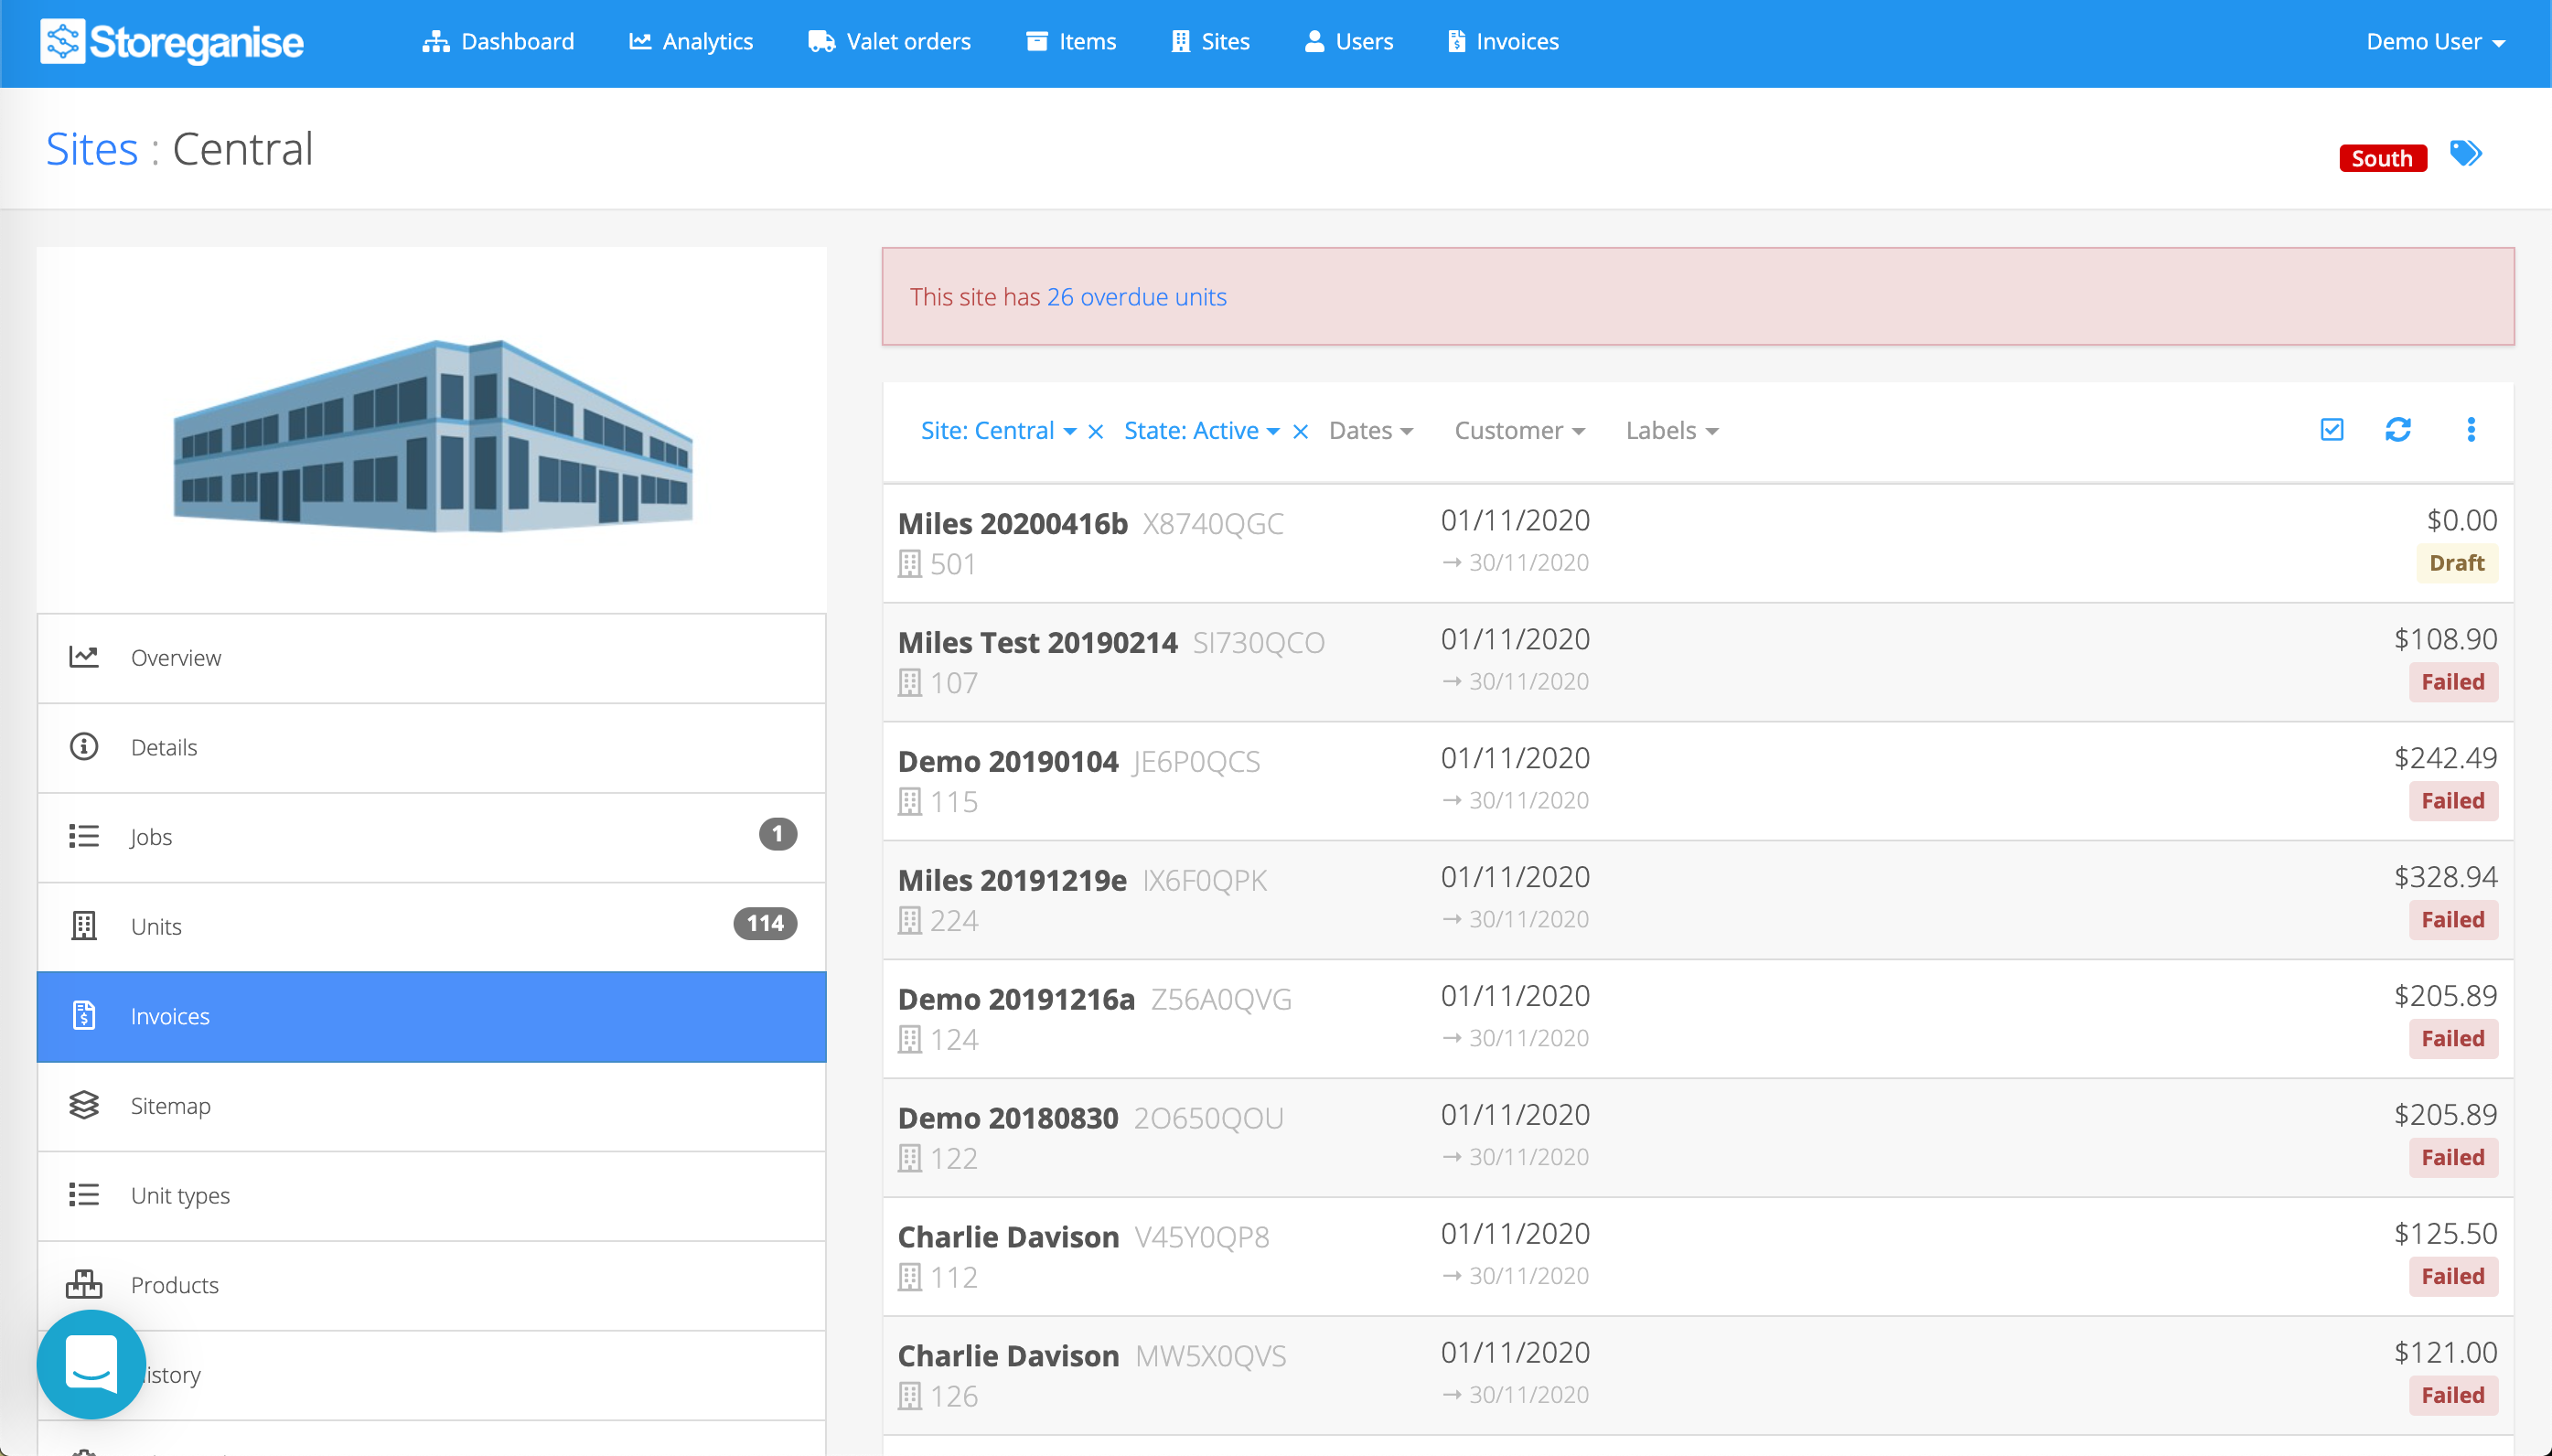 site invoices overview